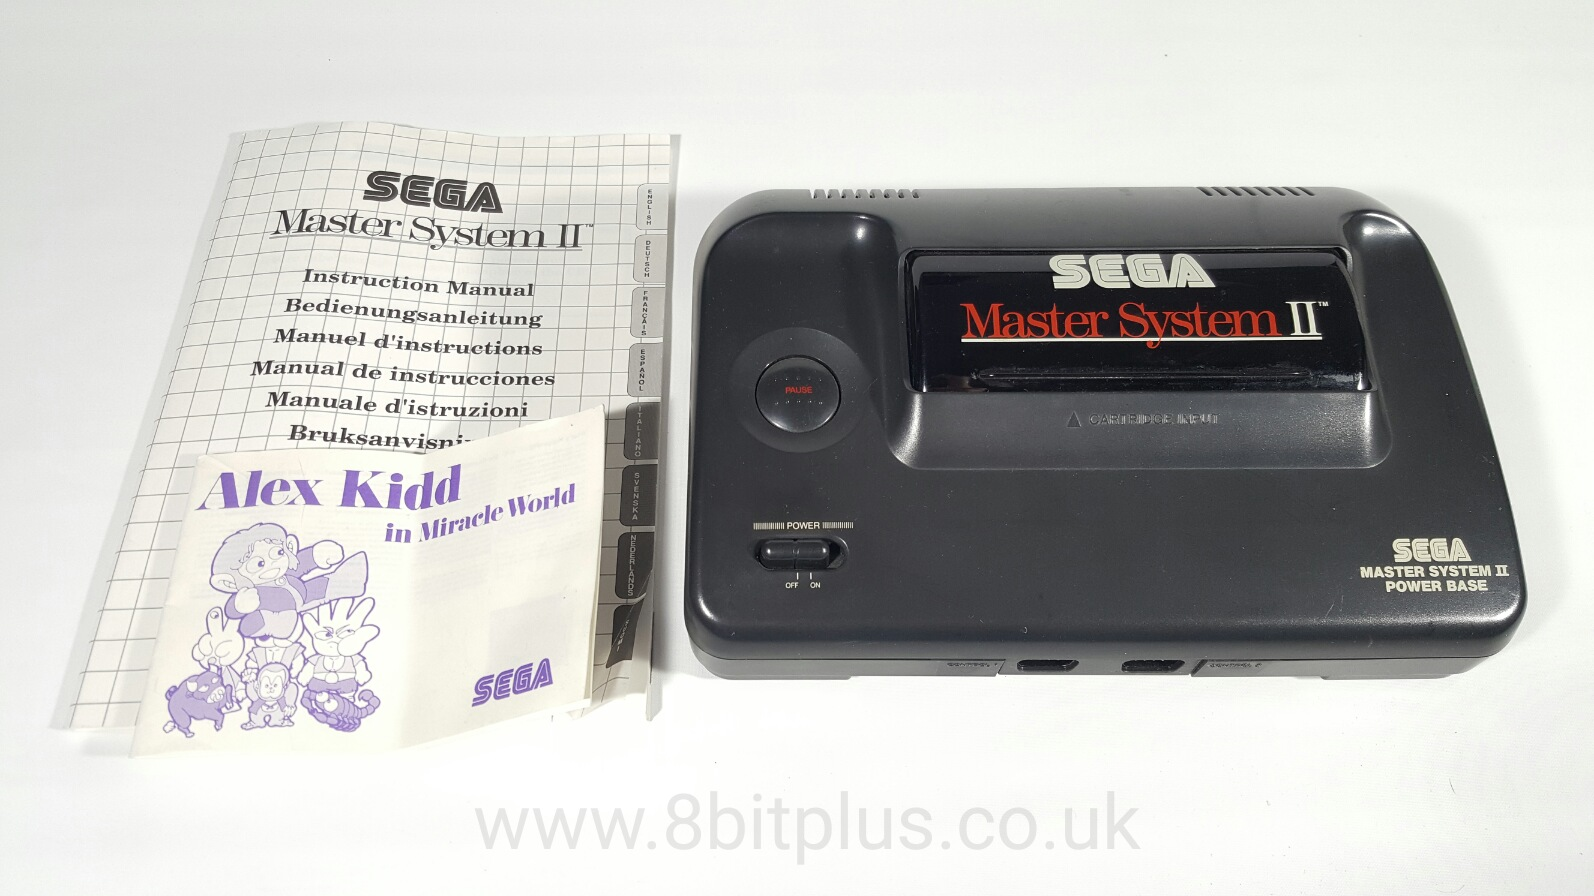 Master System II console